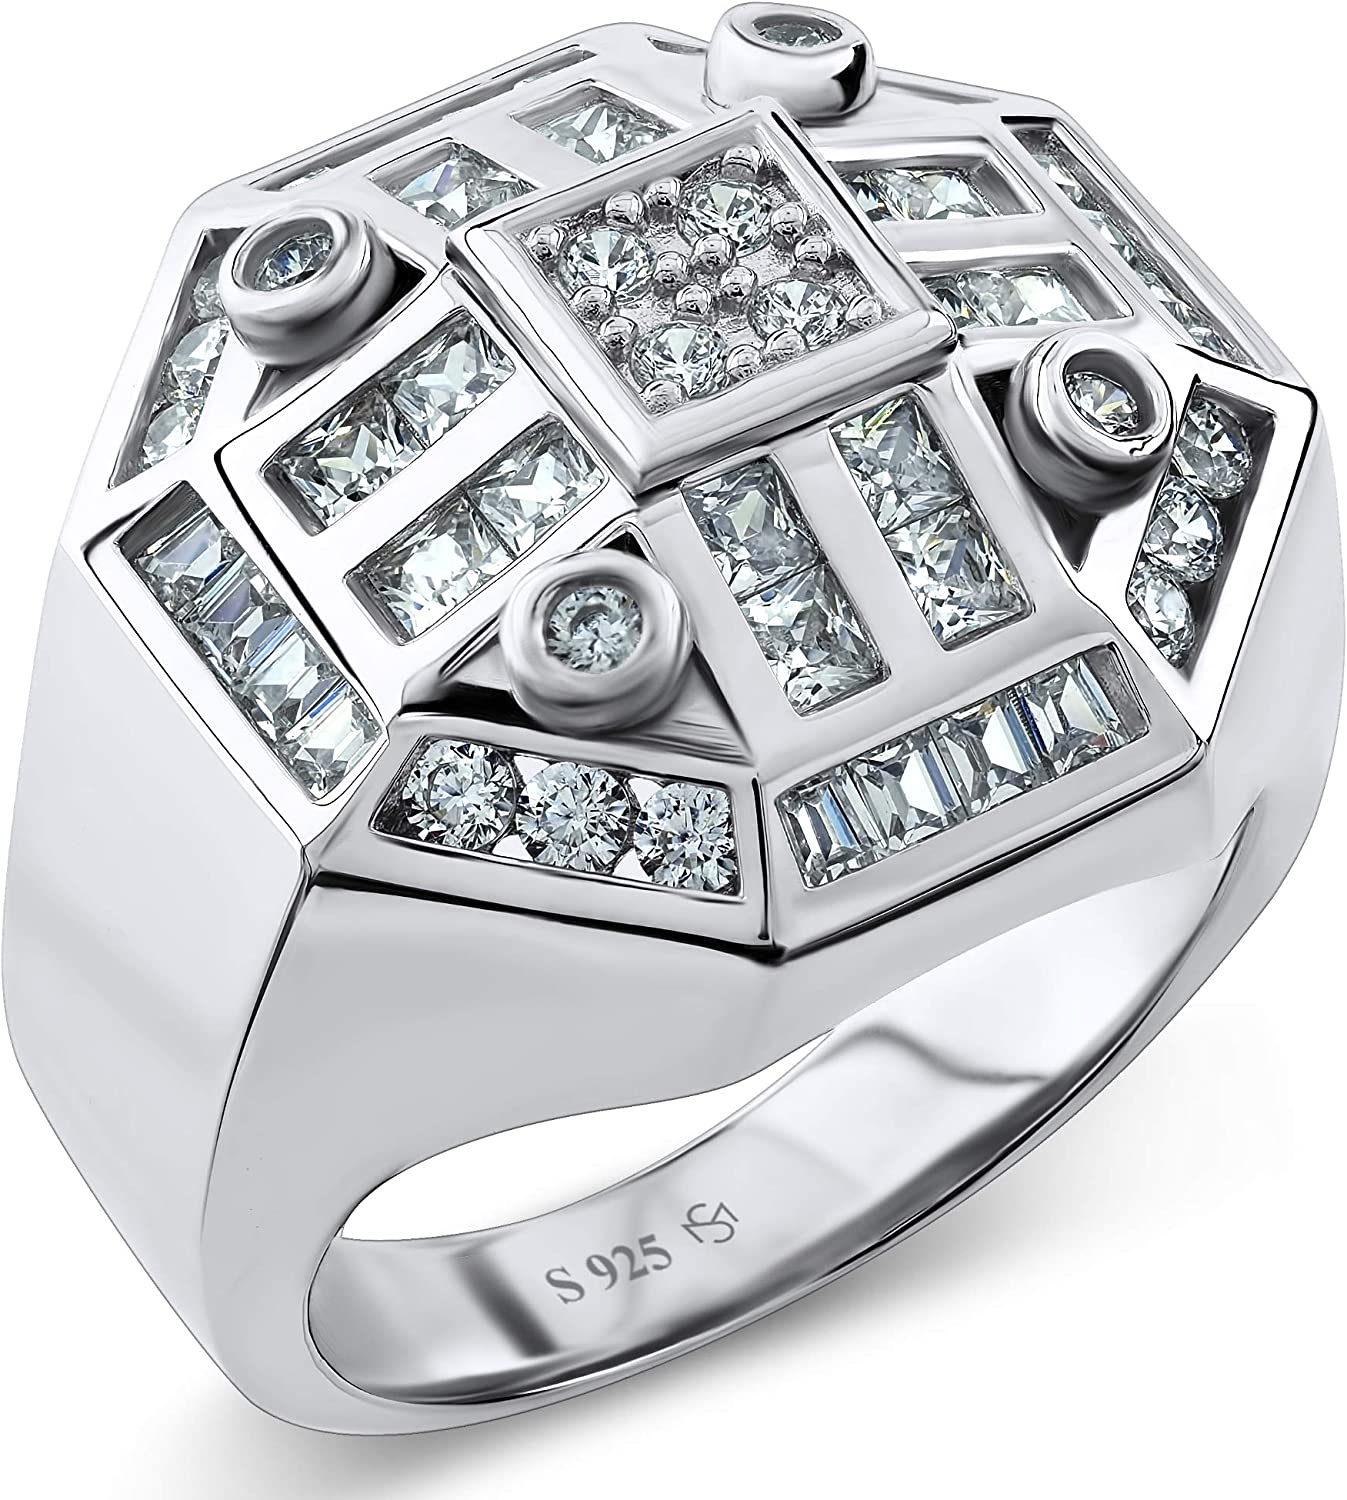 [2-5 Days Delivery] Men's Sterling Silver .925 Octagon Ring Featuring 52 White Round Square and Baguette Cubic Zirconia (CZ) Stones. Hip Hop Jewelry, Bling Ring, Eye Catching Design